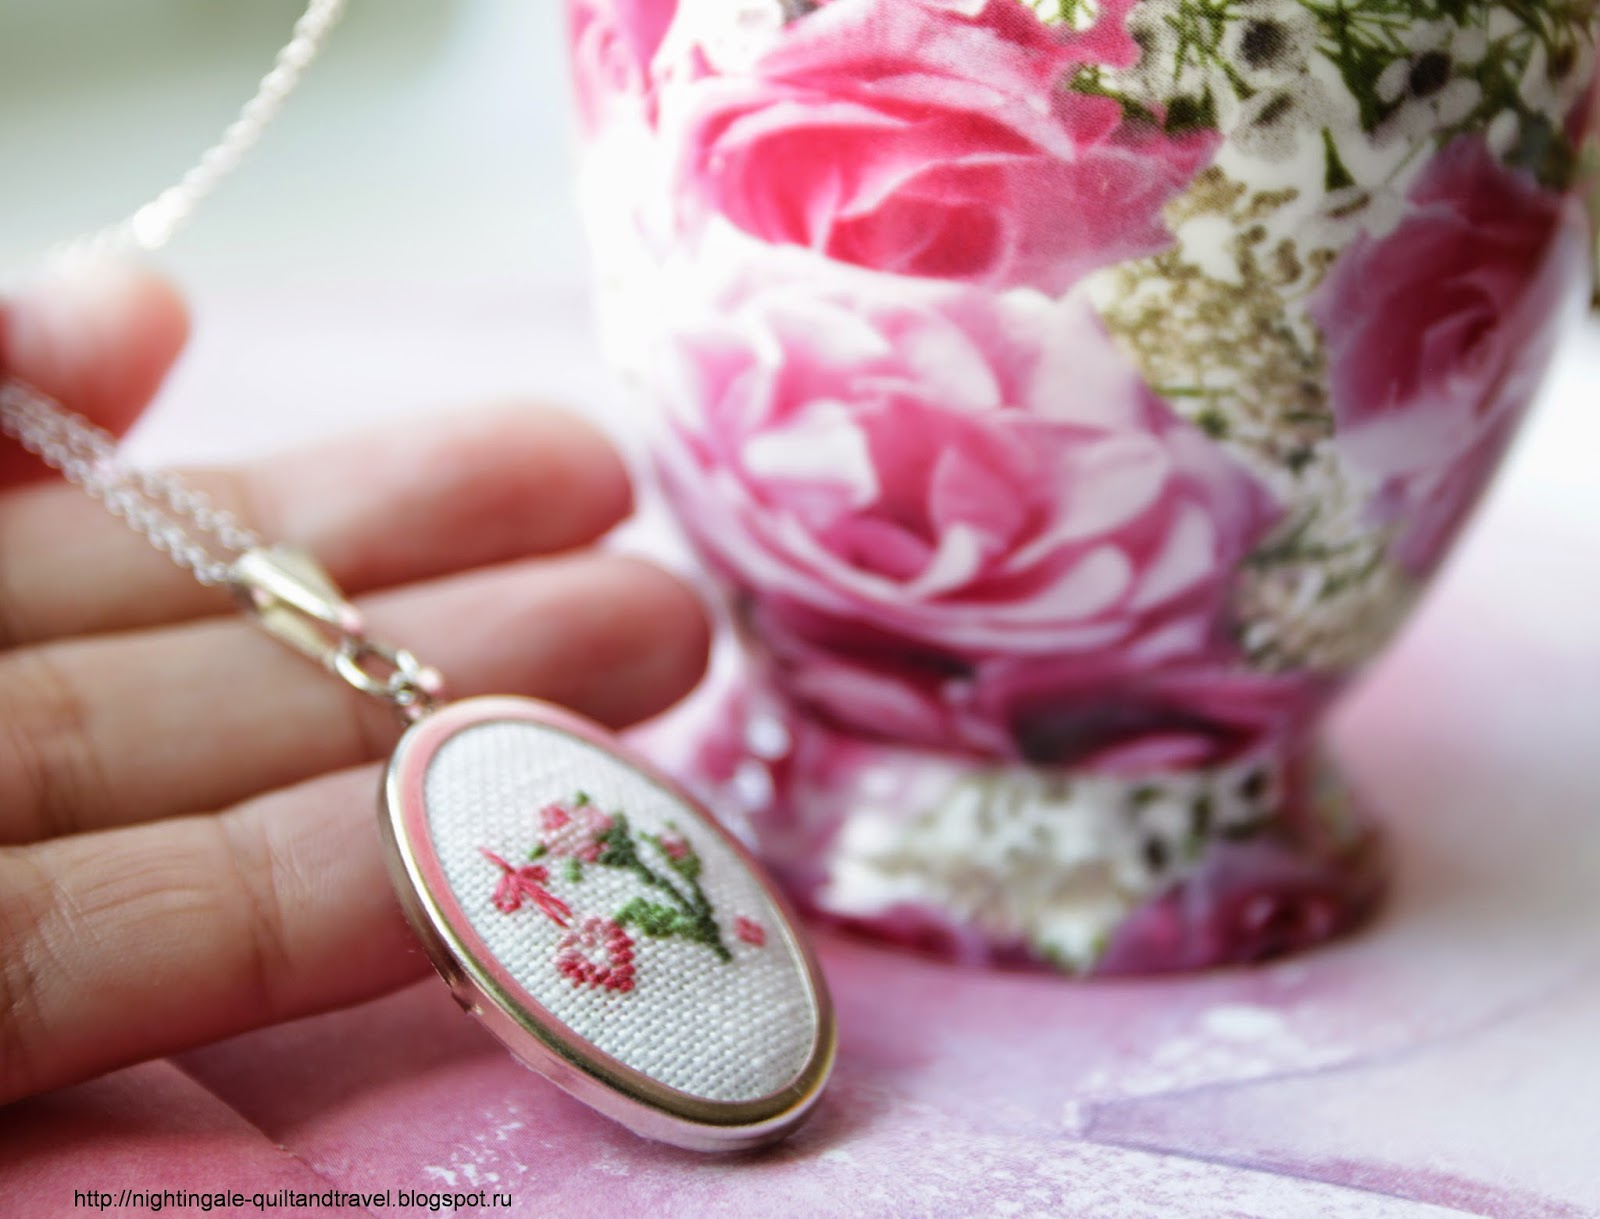 http://nightingale-quiltandtravel.blogspot.ru/2015/04/pendant-rose.html